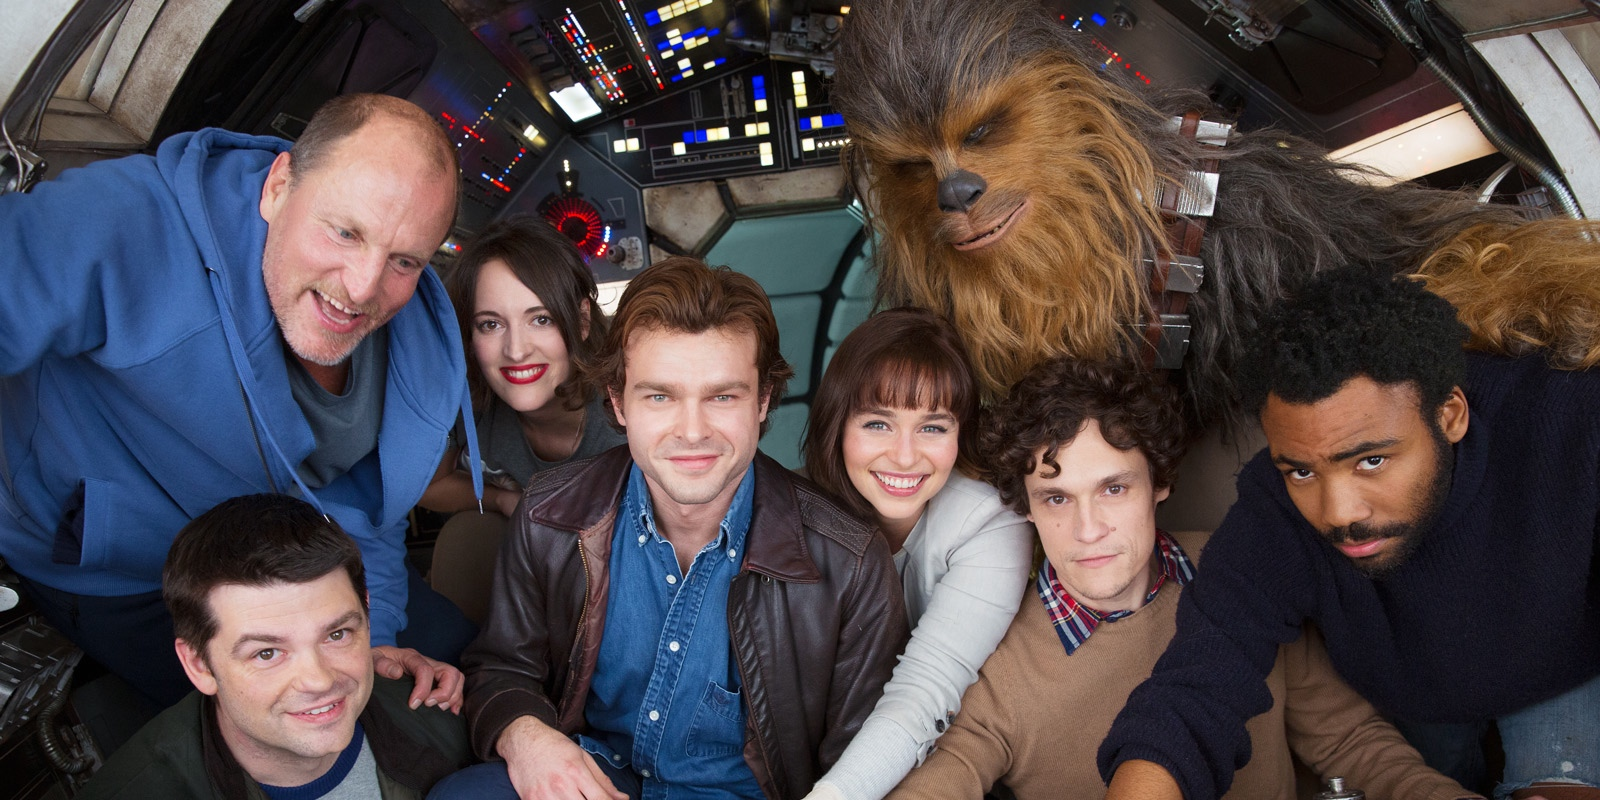 Han Solo Movie Cast Photo cropped